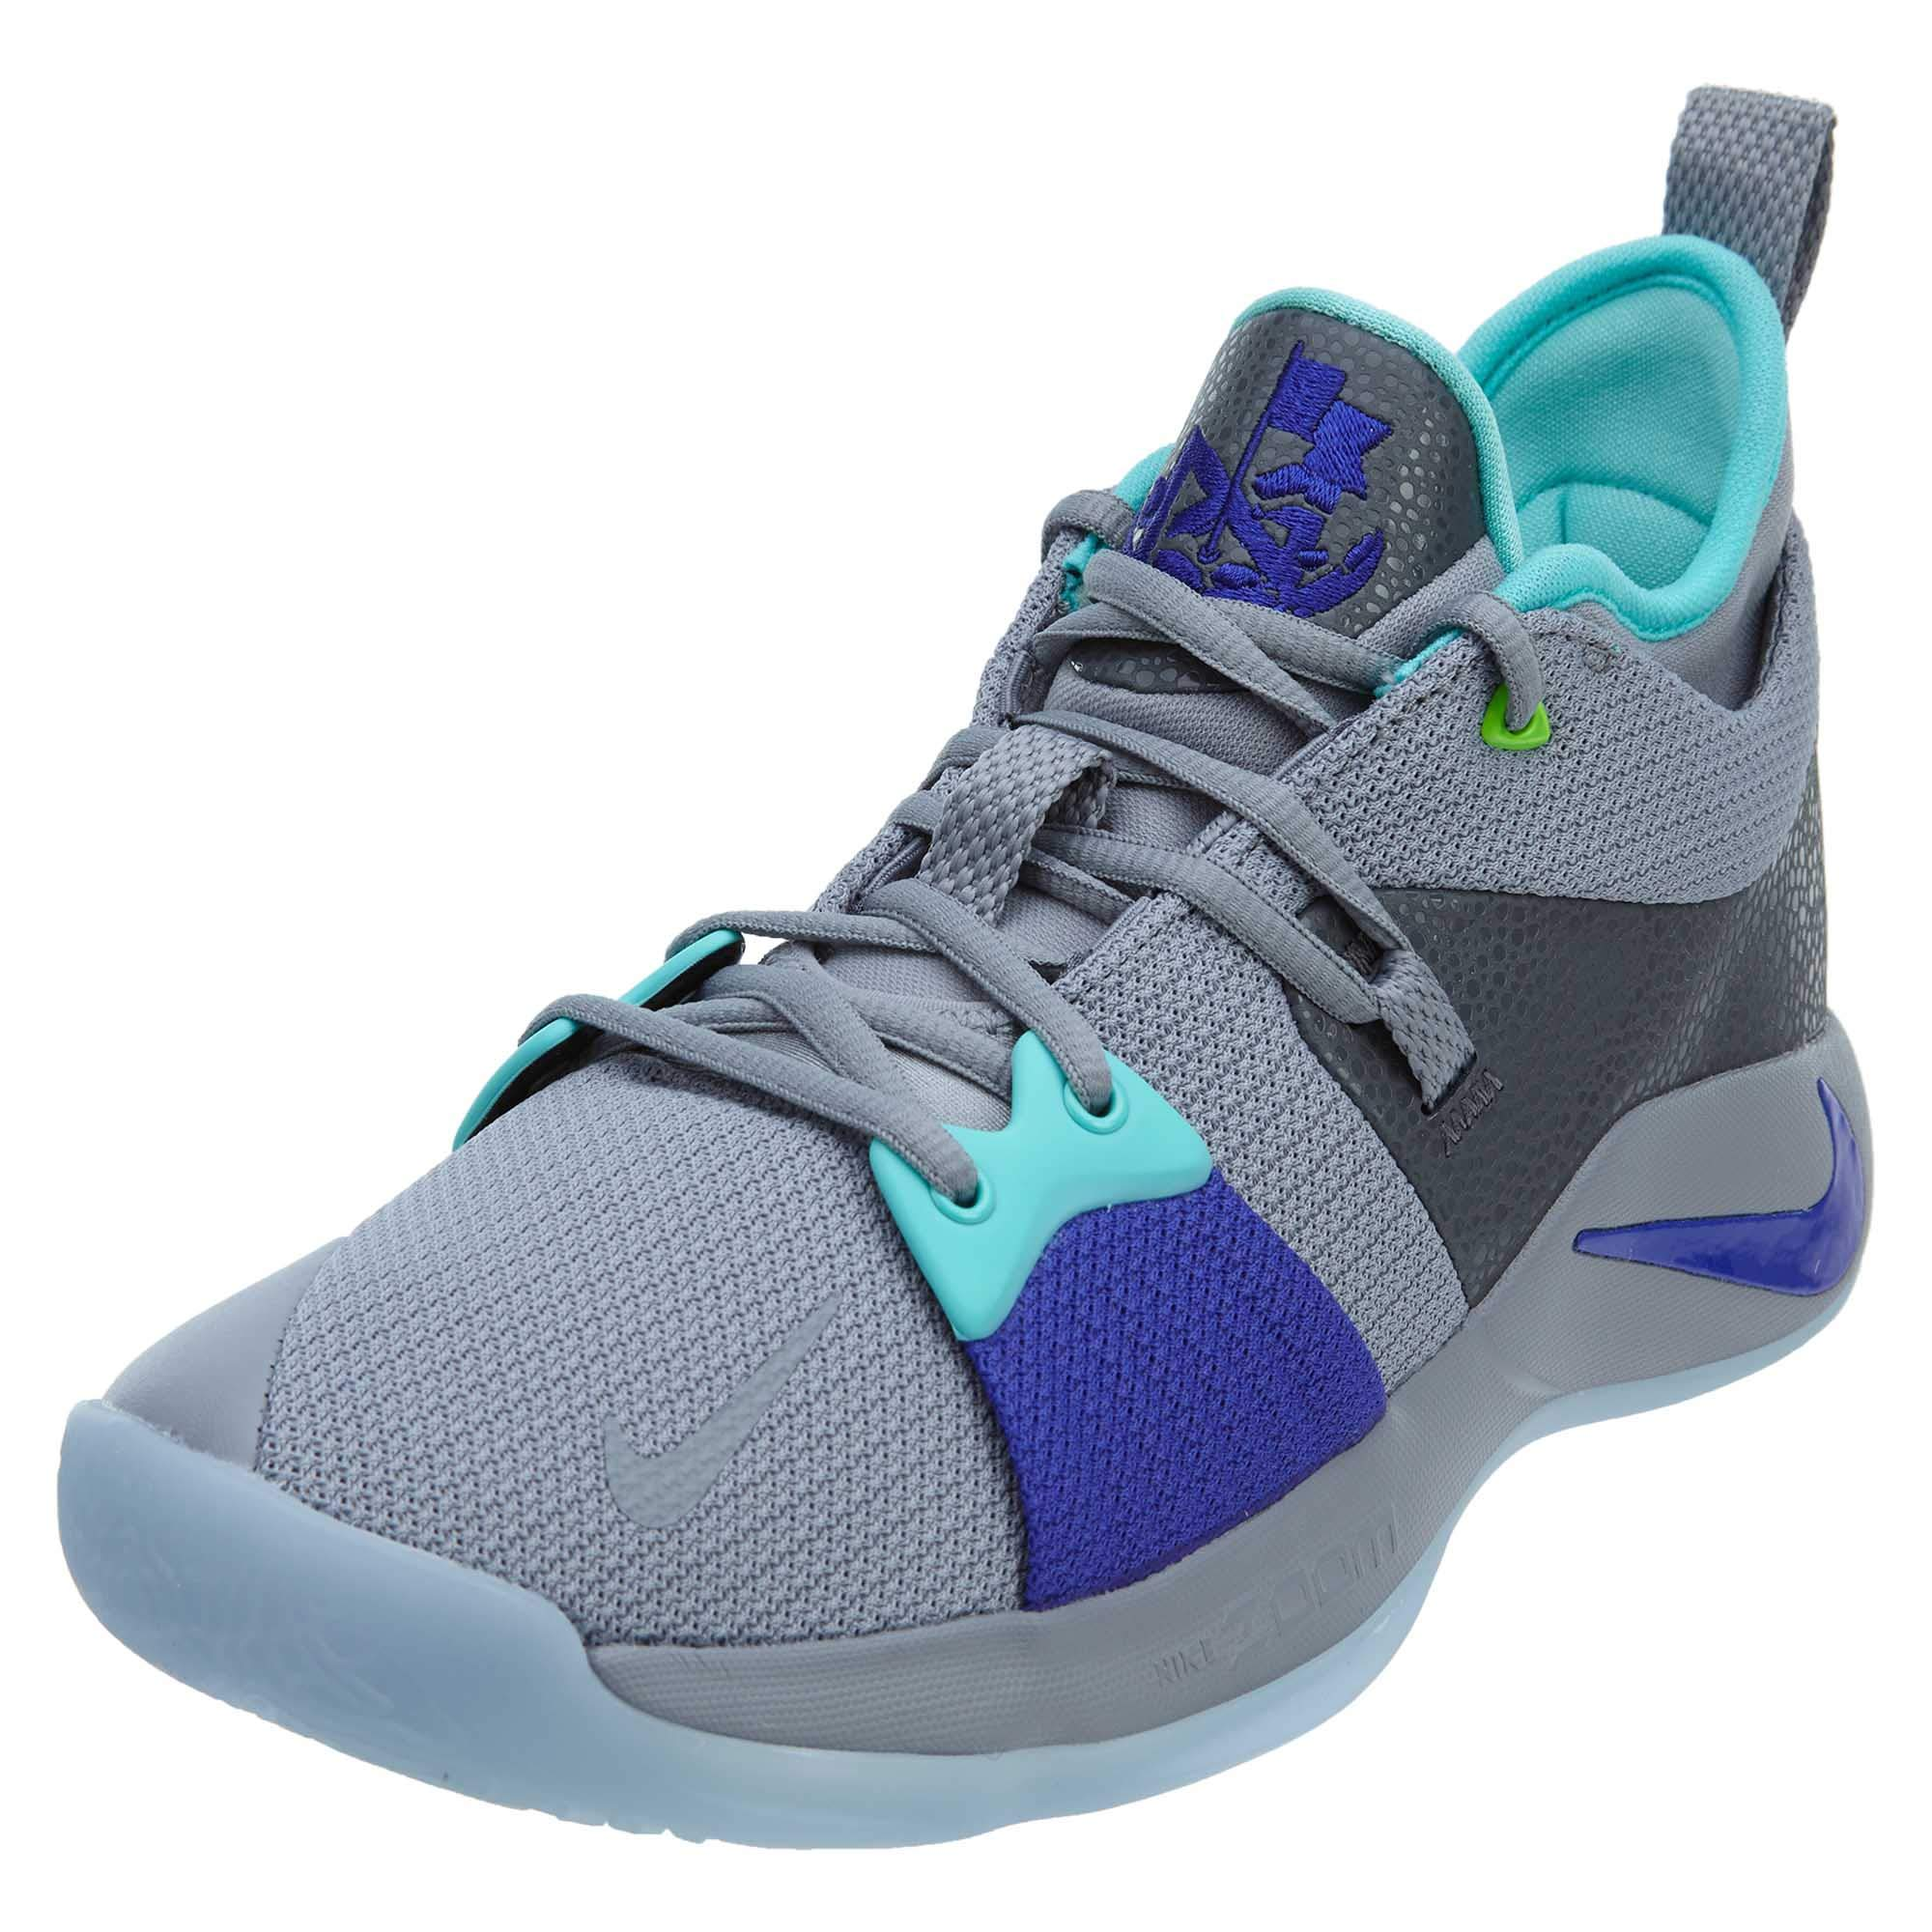 9f5983abd54 Galleon - NIKE Men s PG 2 Basketball Shoes (10.5